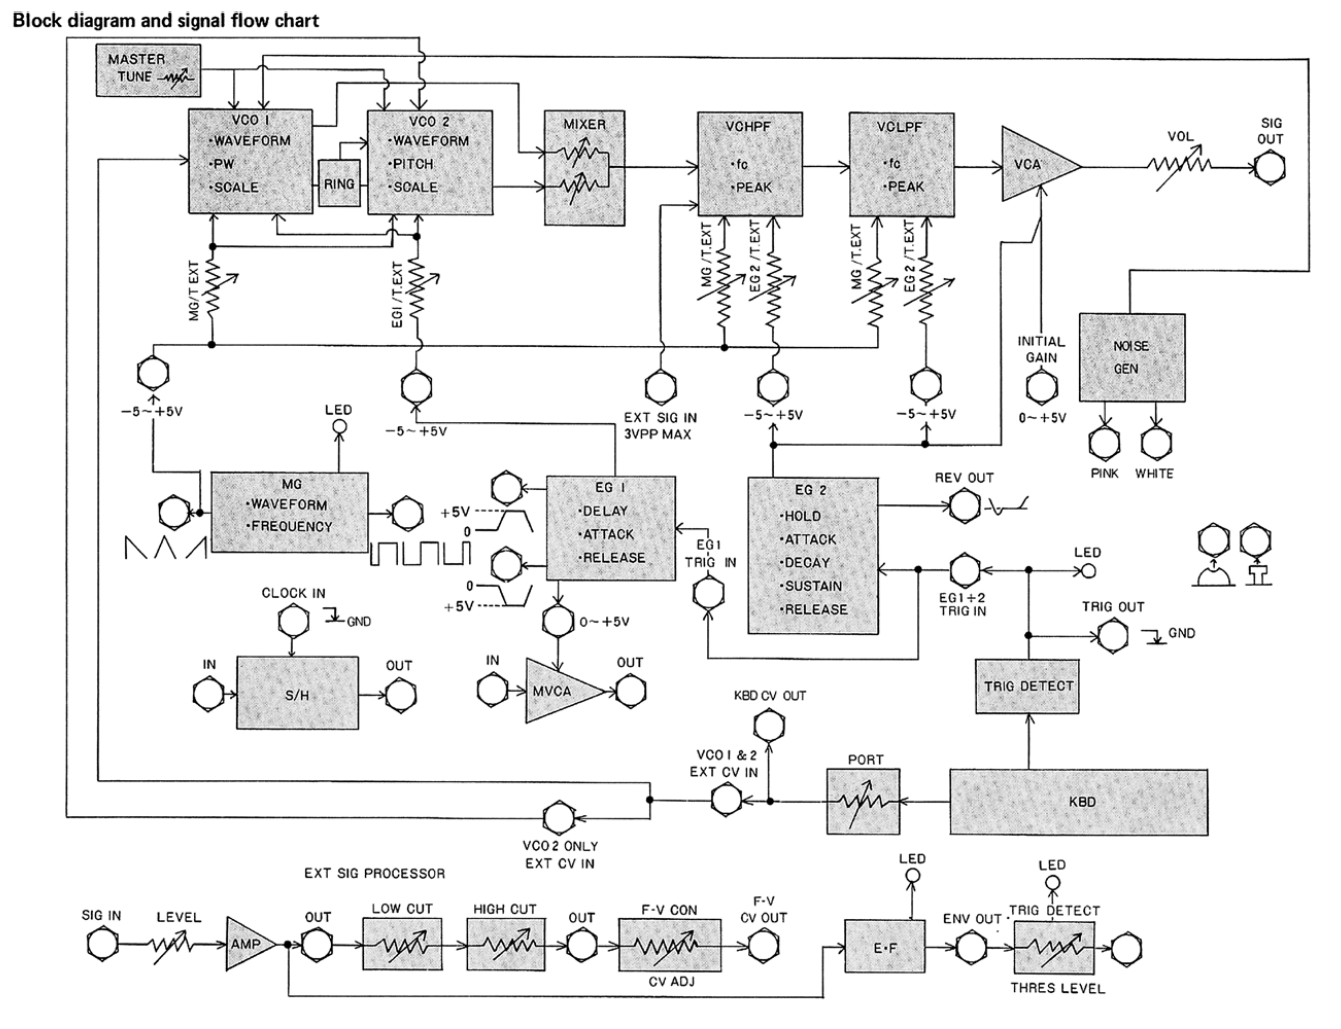 Korg MS-20 block diagram